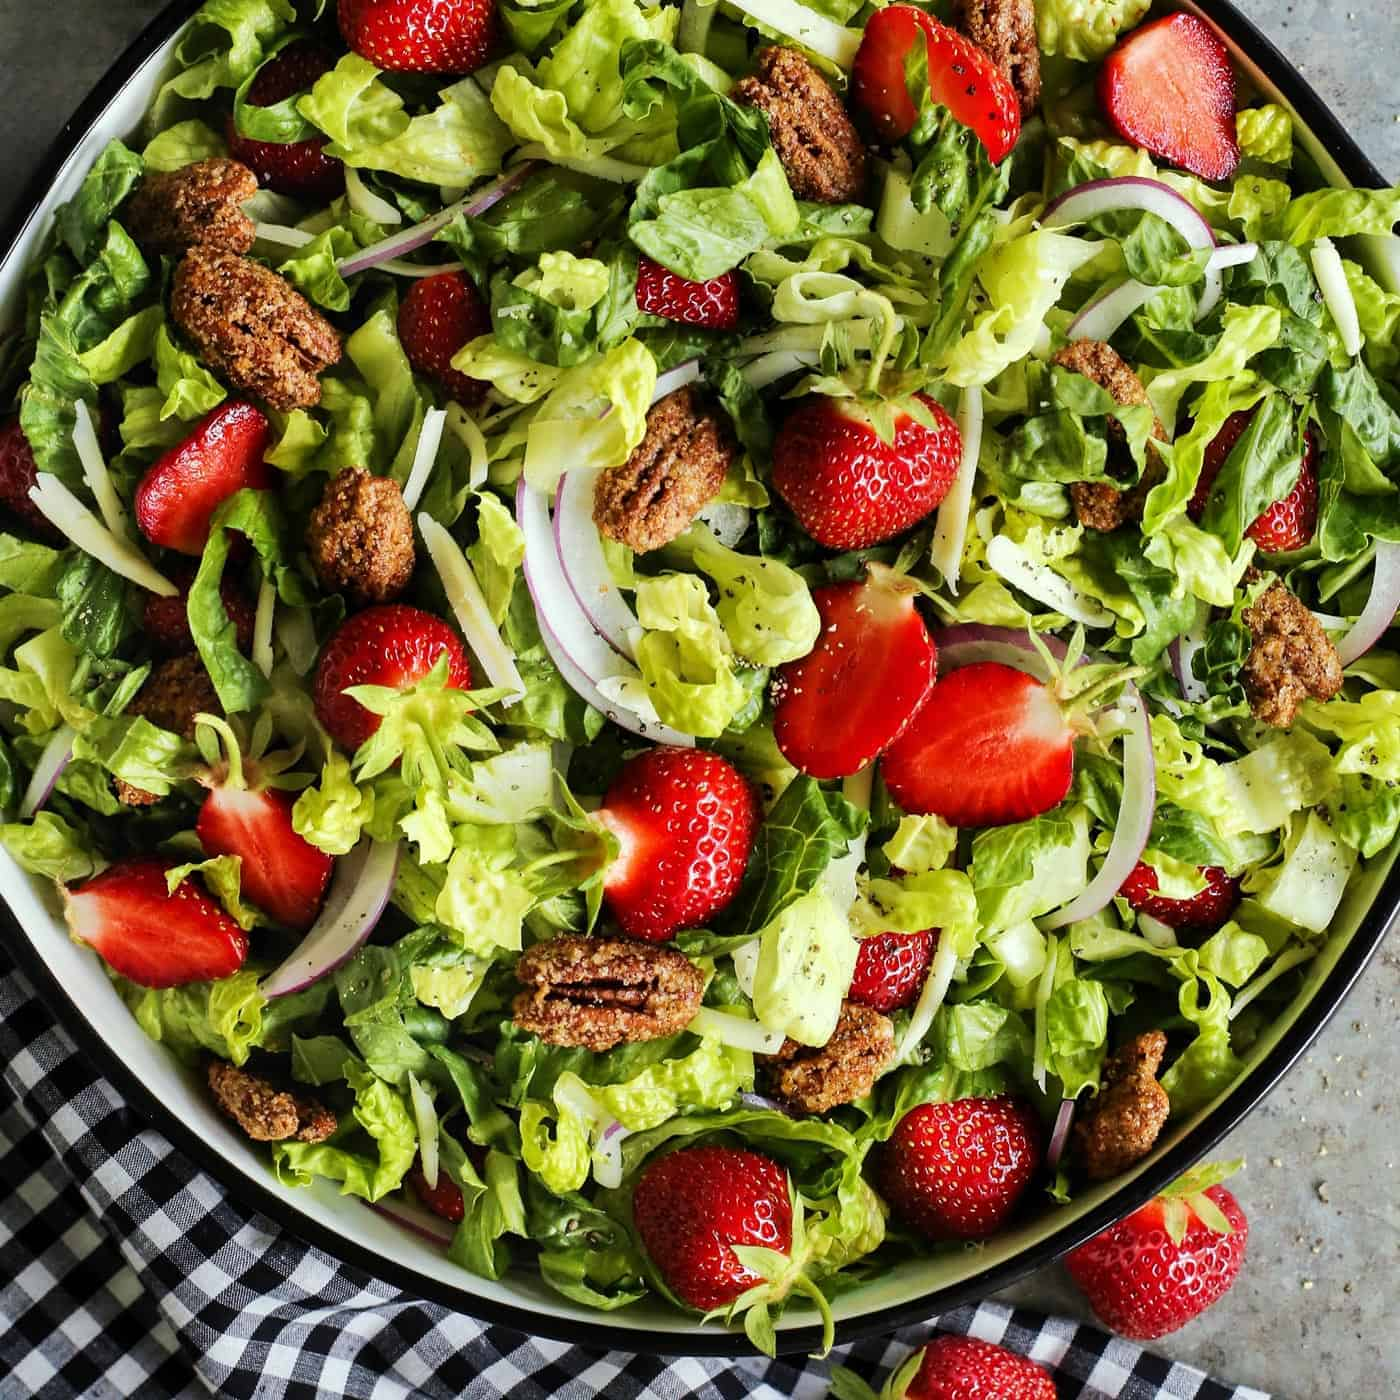 strawberry salad with romaine lettuce and strawberries